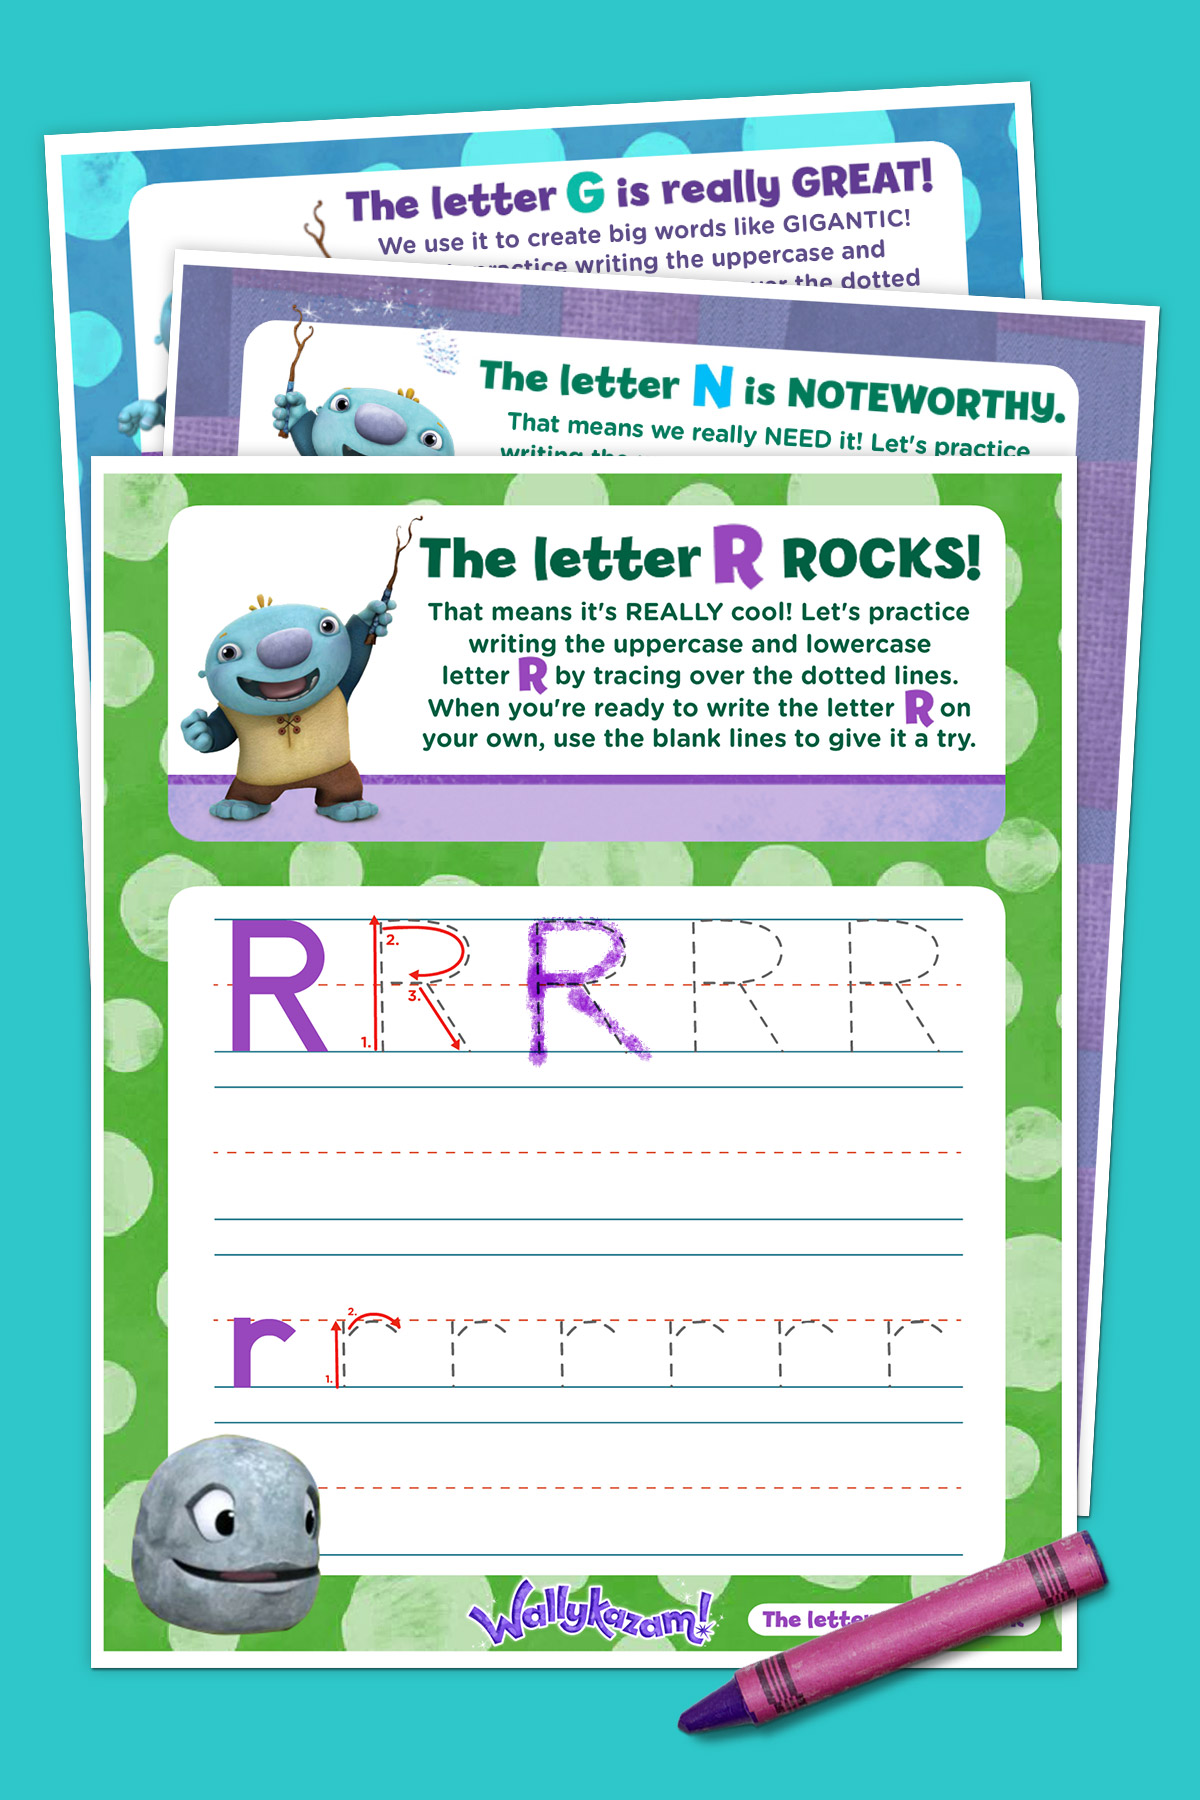 photograph about Letter Tracing Printable named Wallykazam! Letter Tracing Pack Nickelodeon Mothers and fathers